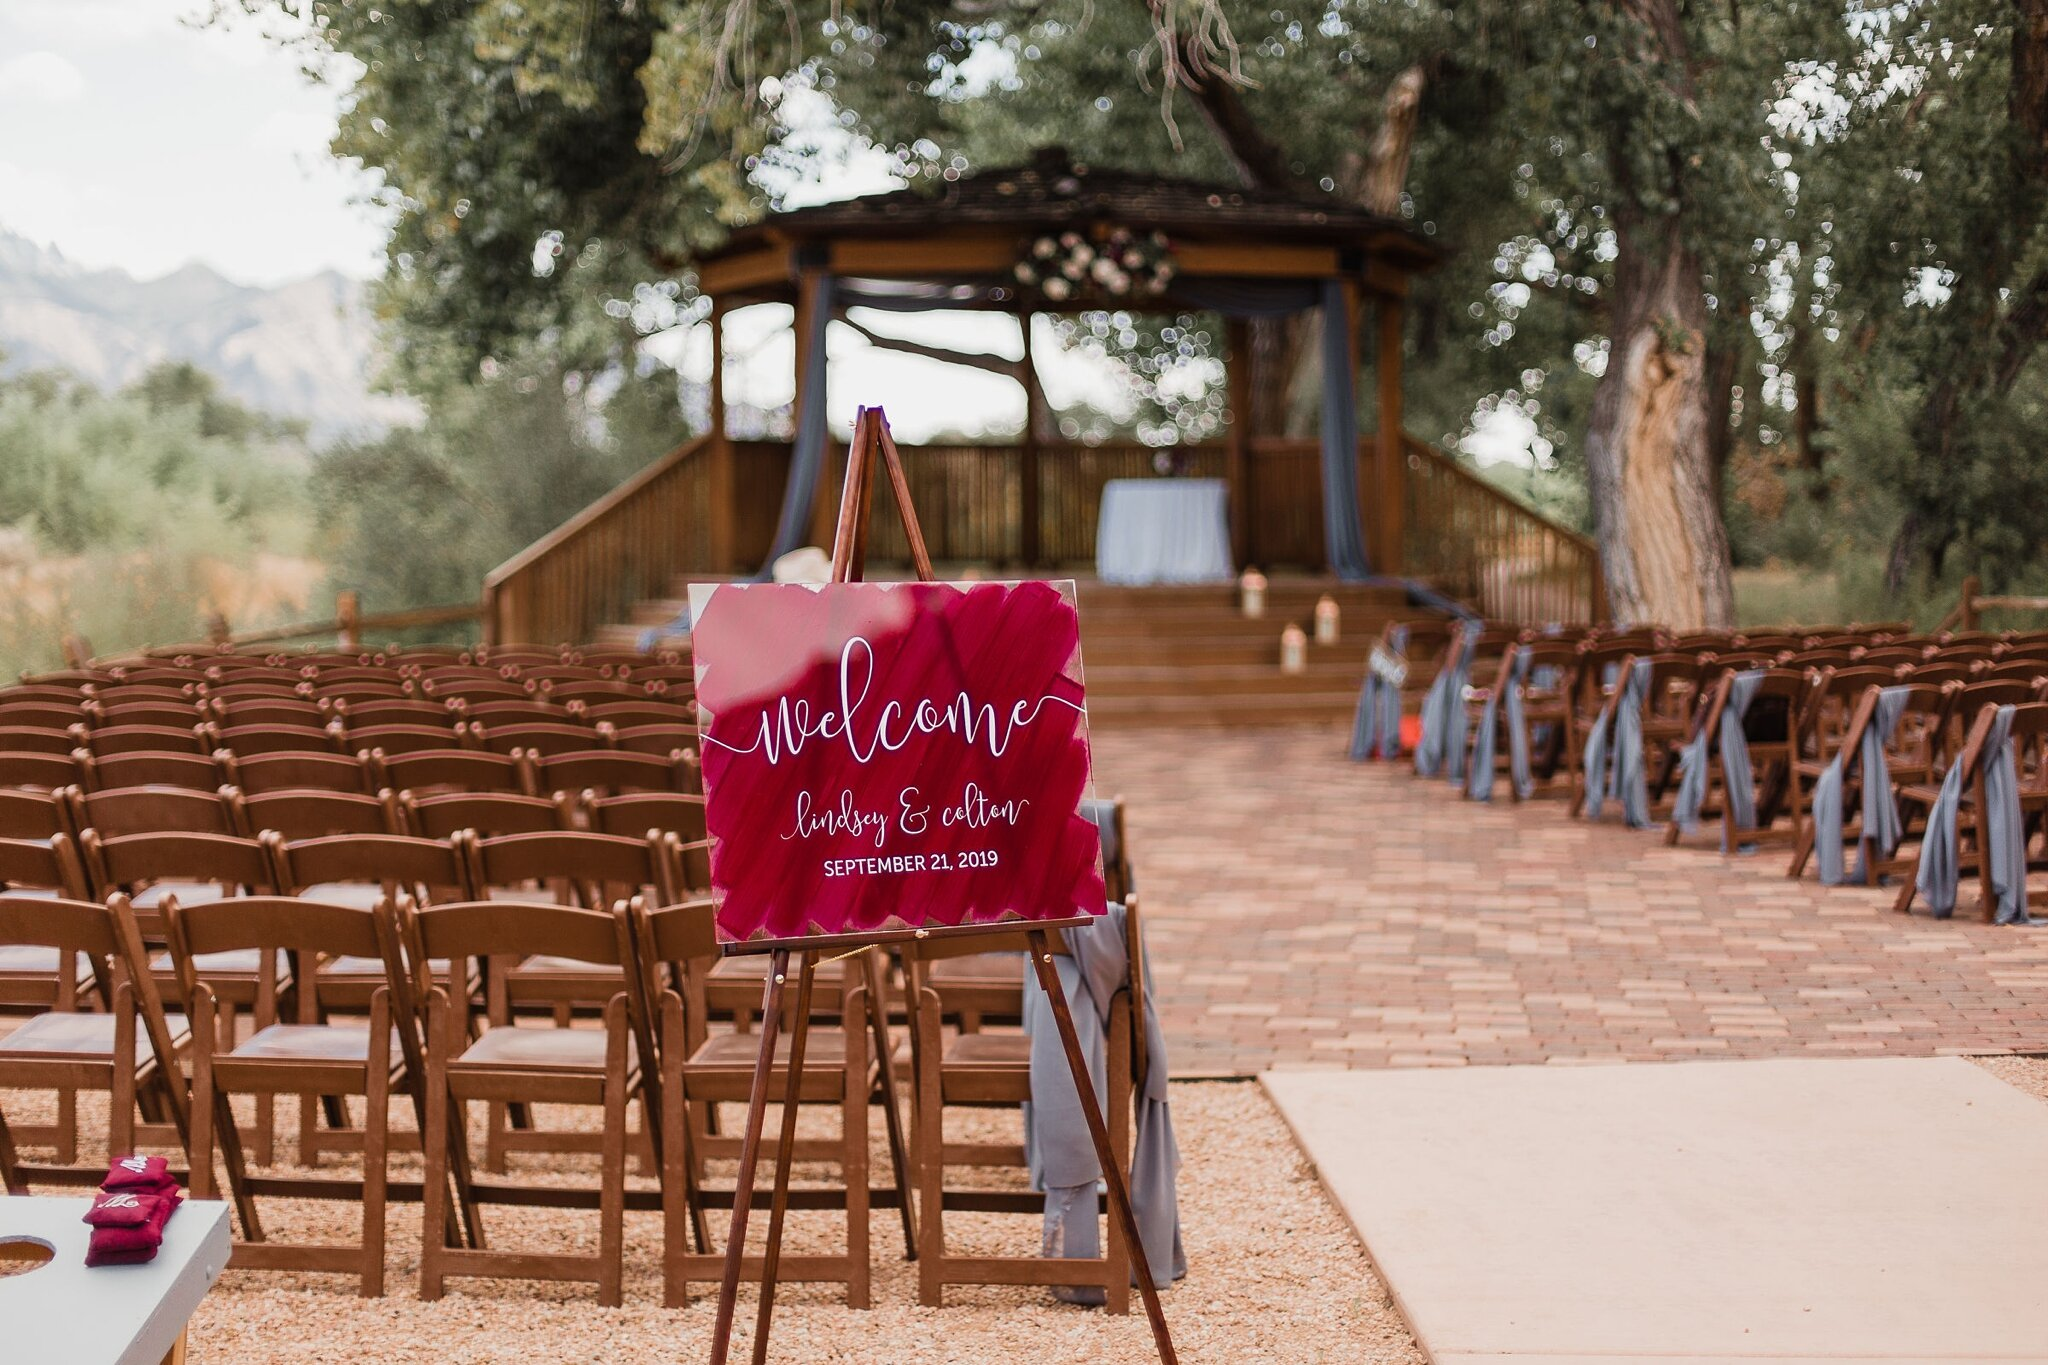 Alicia+lucia+photography+-+albuquerque+wedding+photographer+-+santa+fe+wedding+photography+-+new+mexico+wedding+photographer+-+new+mexico+wedding+-+wedding+signage+-+wedding+signs+-+glass+wedding+signs_0010.jpg